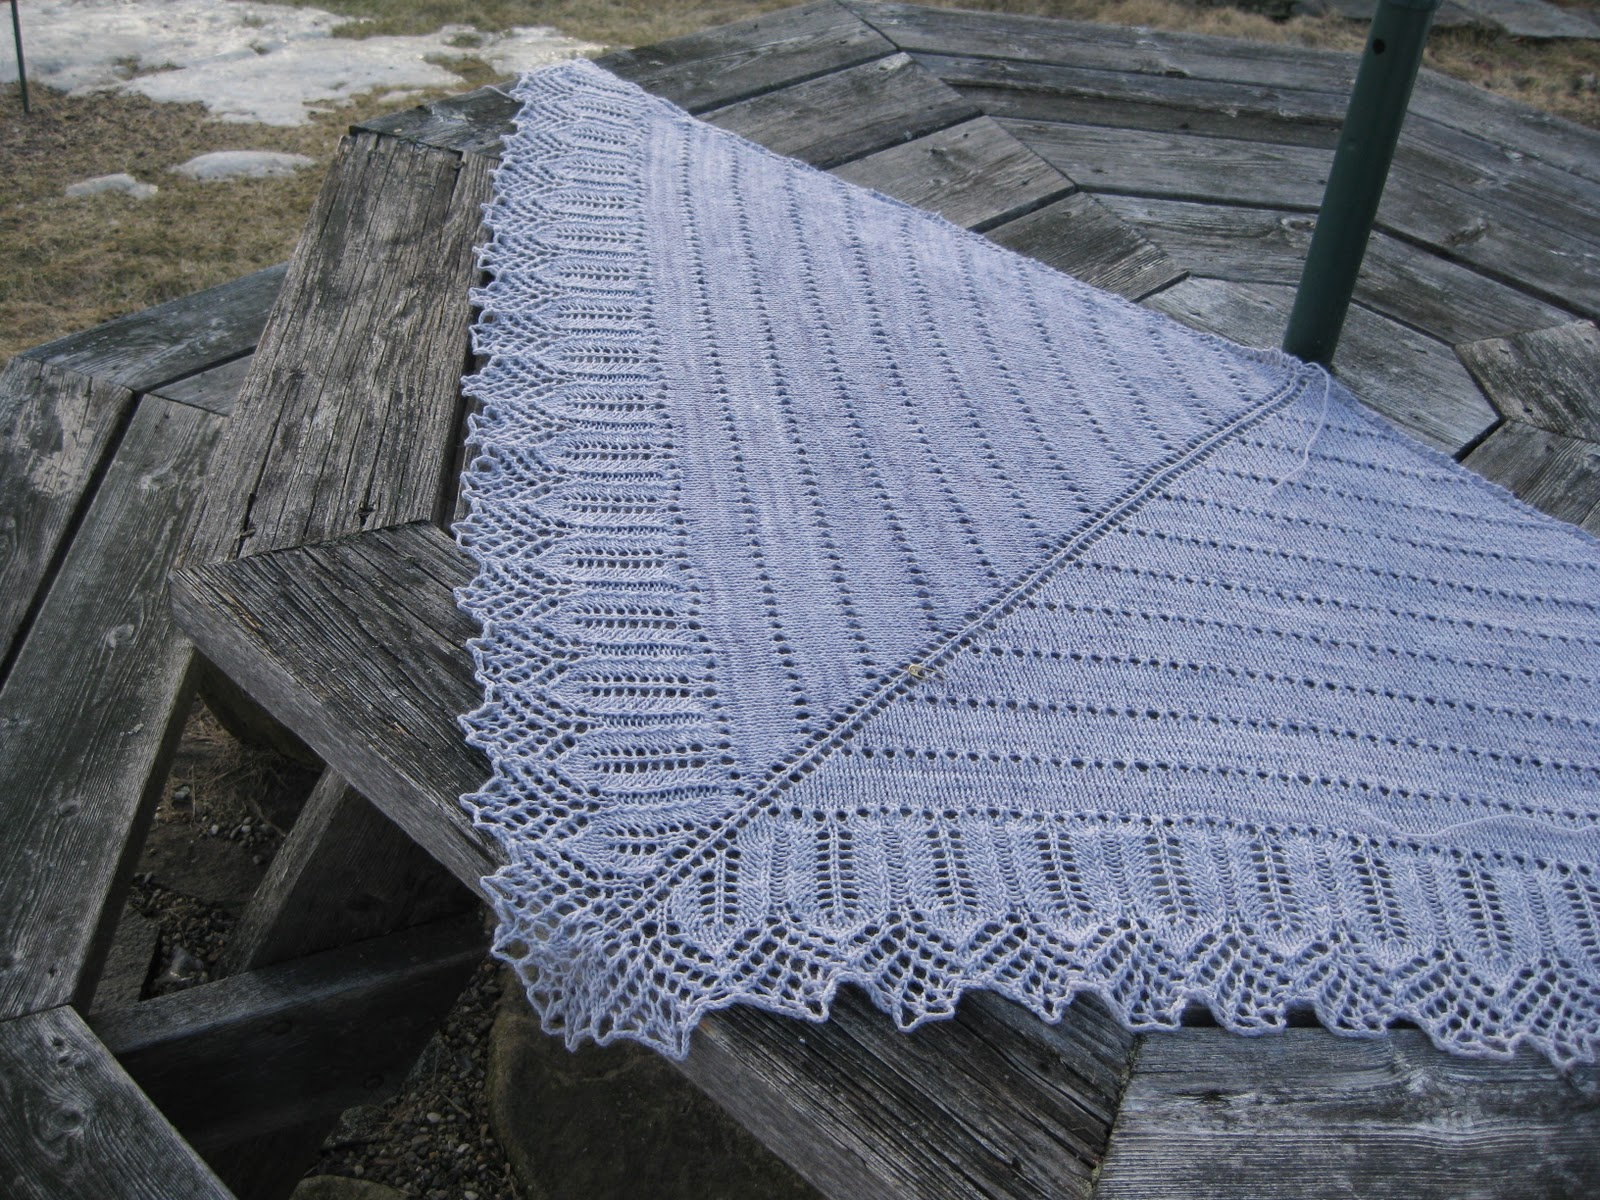 Knittin' to blog about: Shawl Pictures